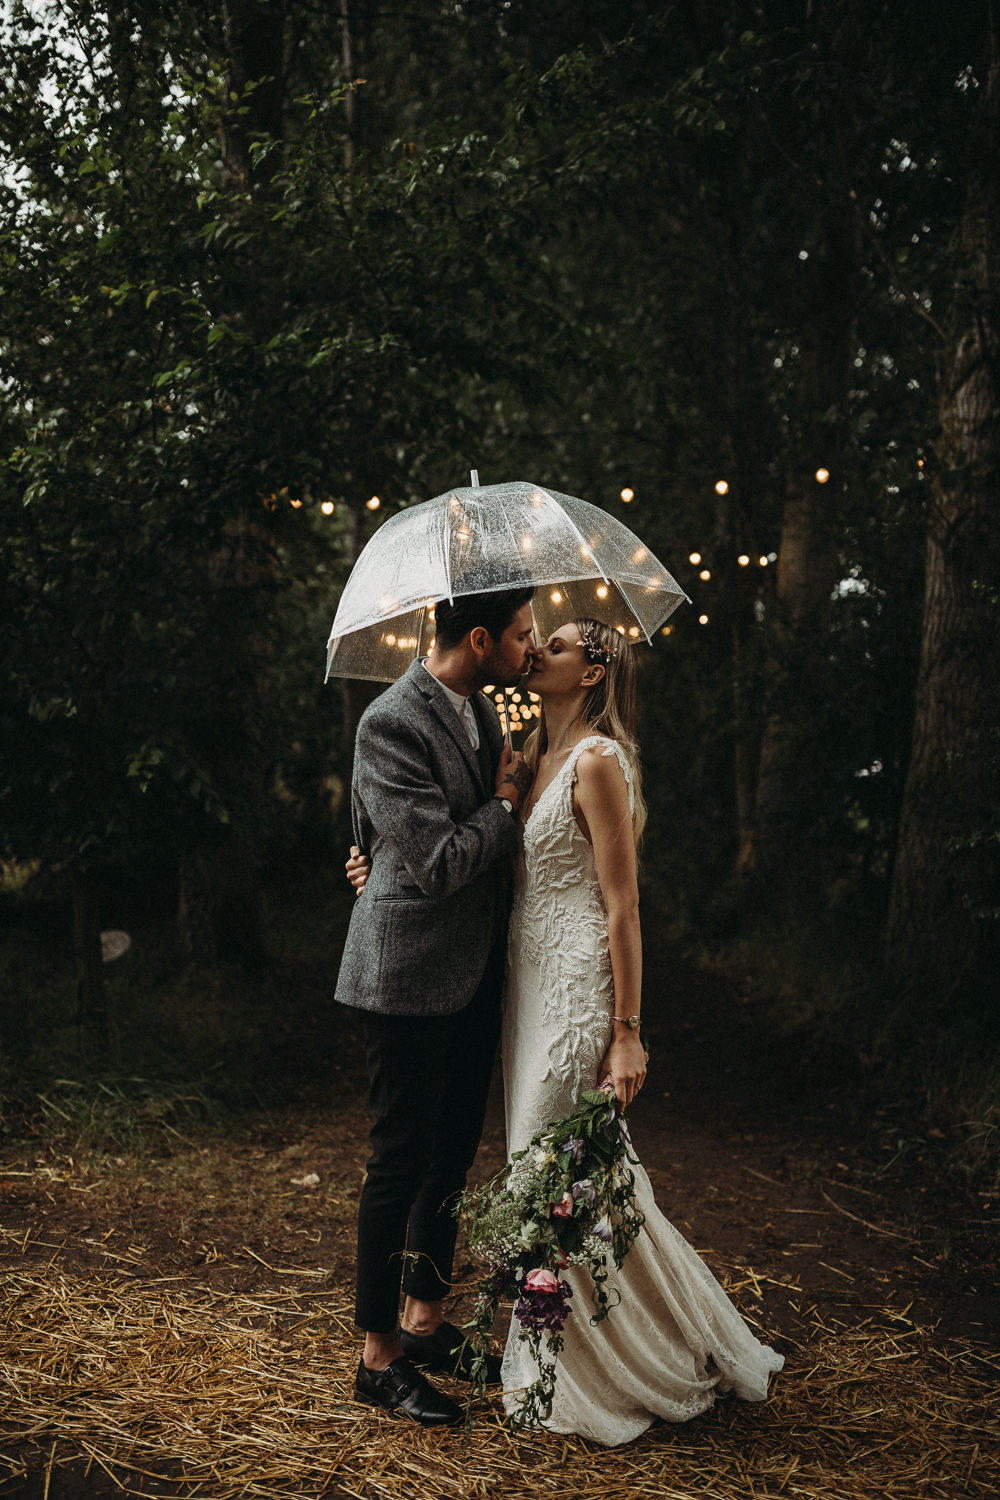 Rainy Rain Umbrella Groom Groomsmen Suit Collar Grey Monk Shoes Horsley Hale Farm Wedding Thyme Lane Photography